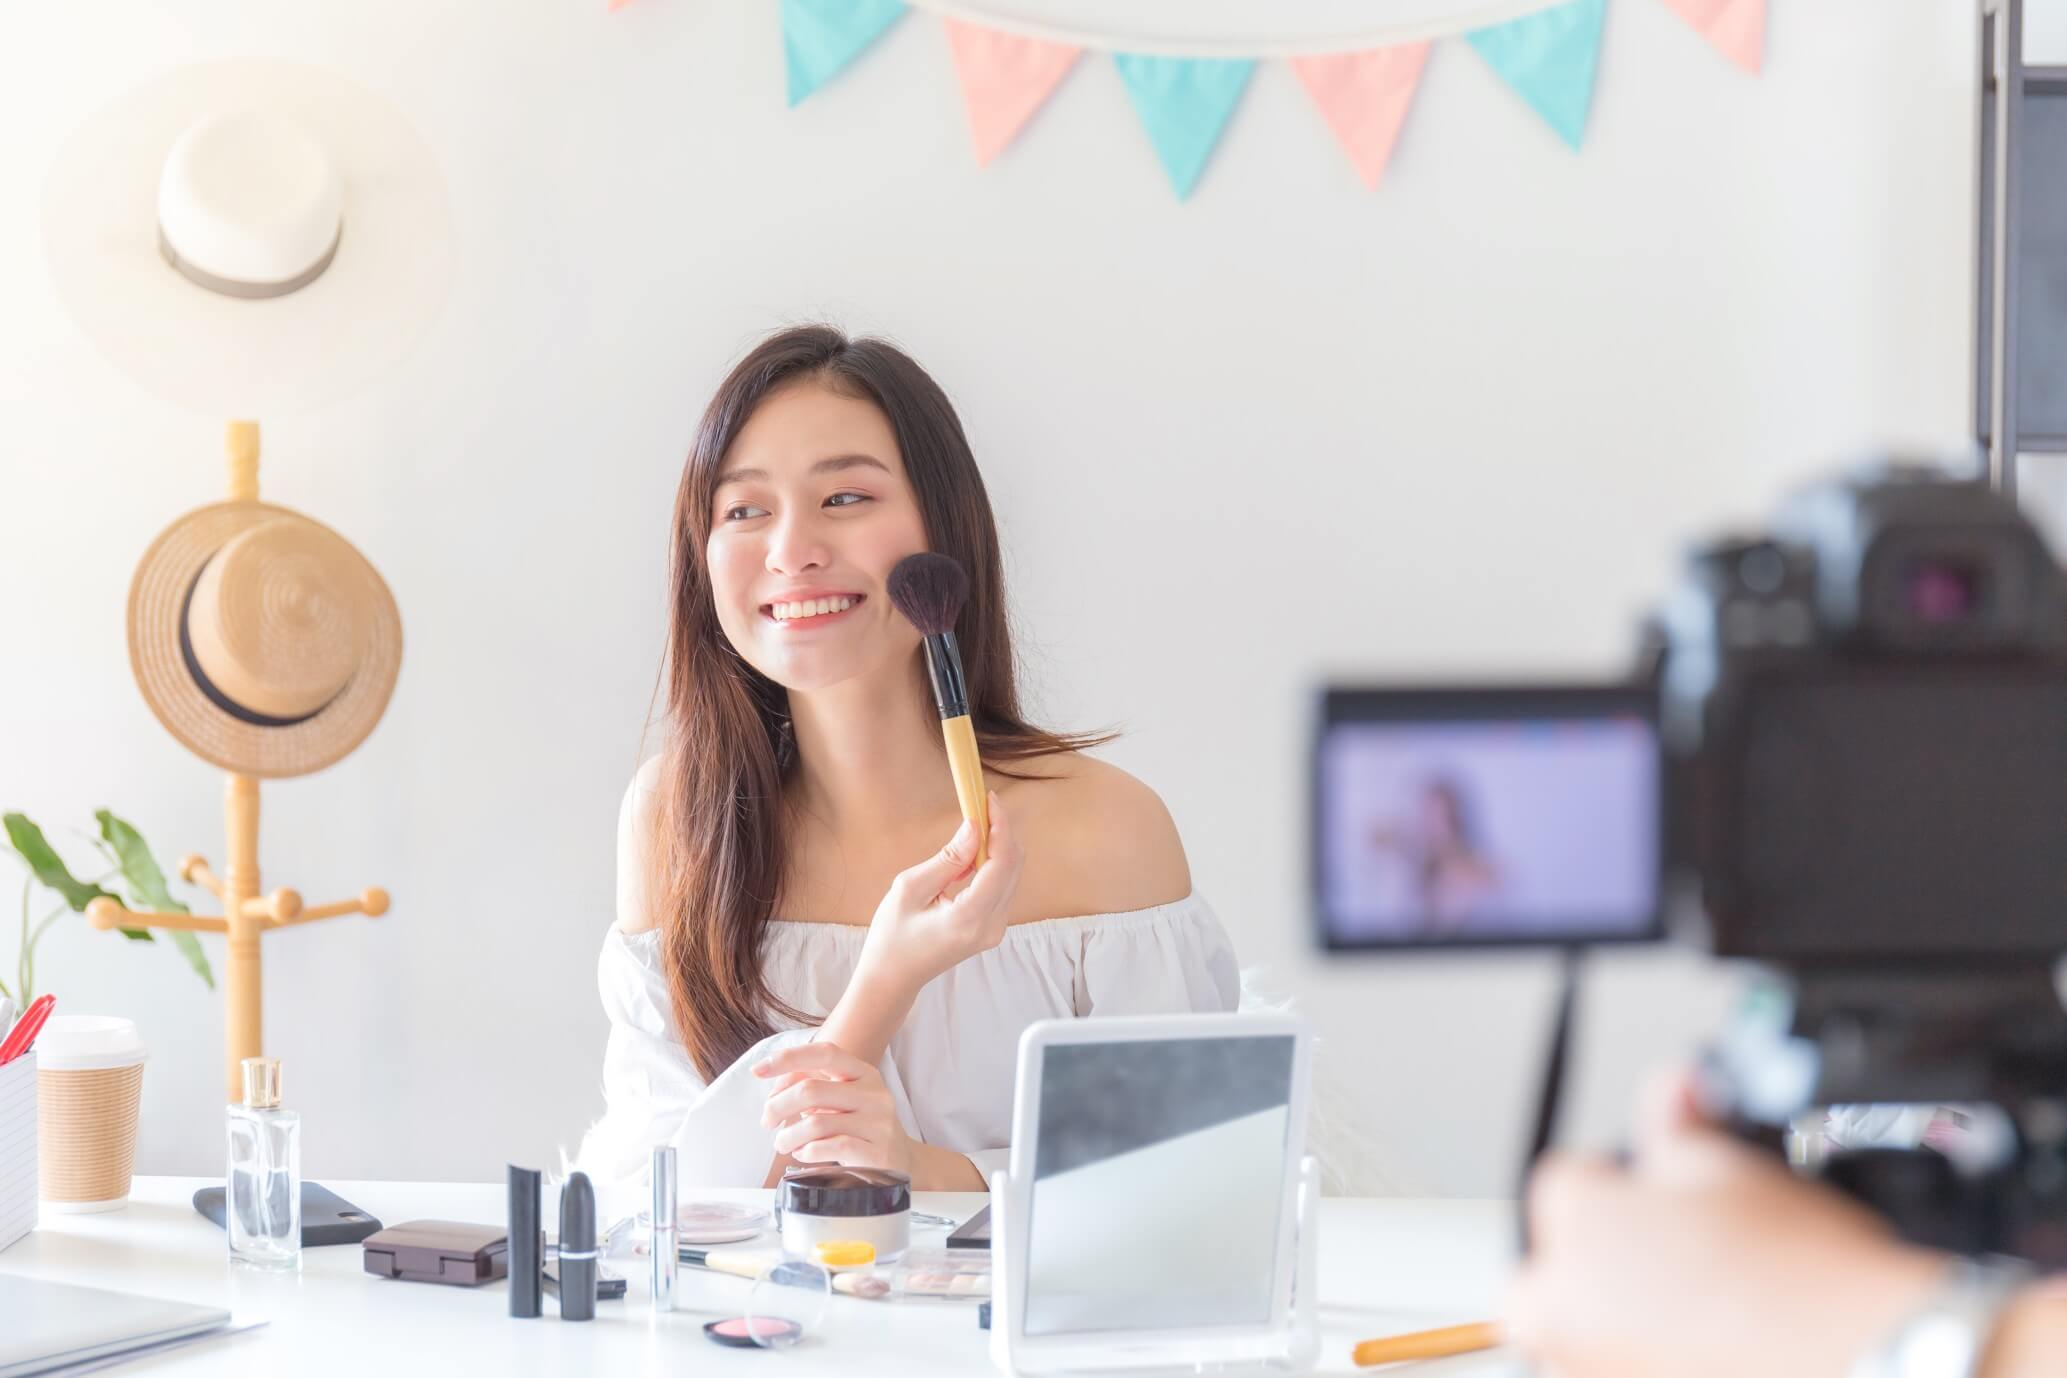 How to Become an Influencer in 2021? The ultimate guide